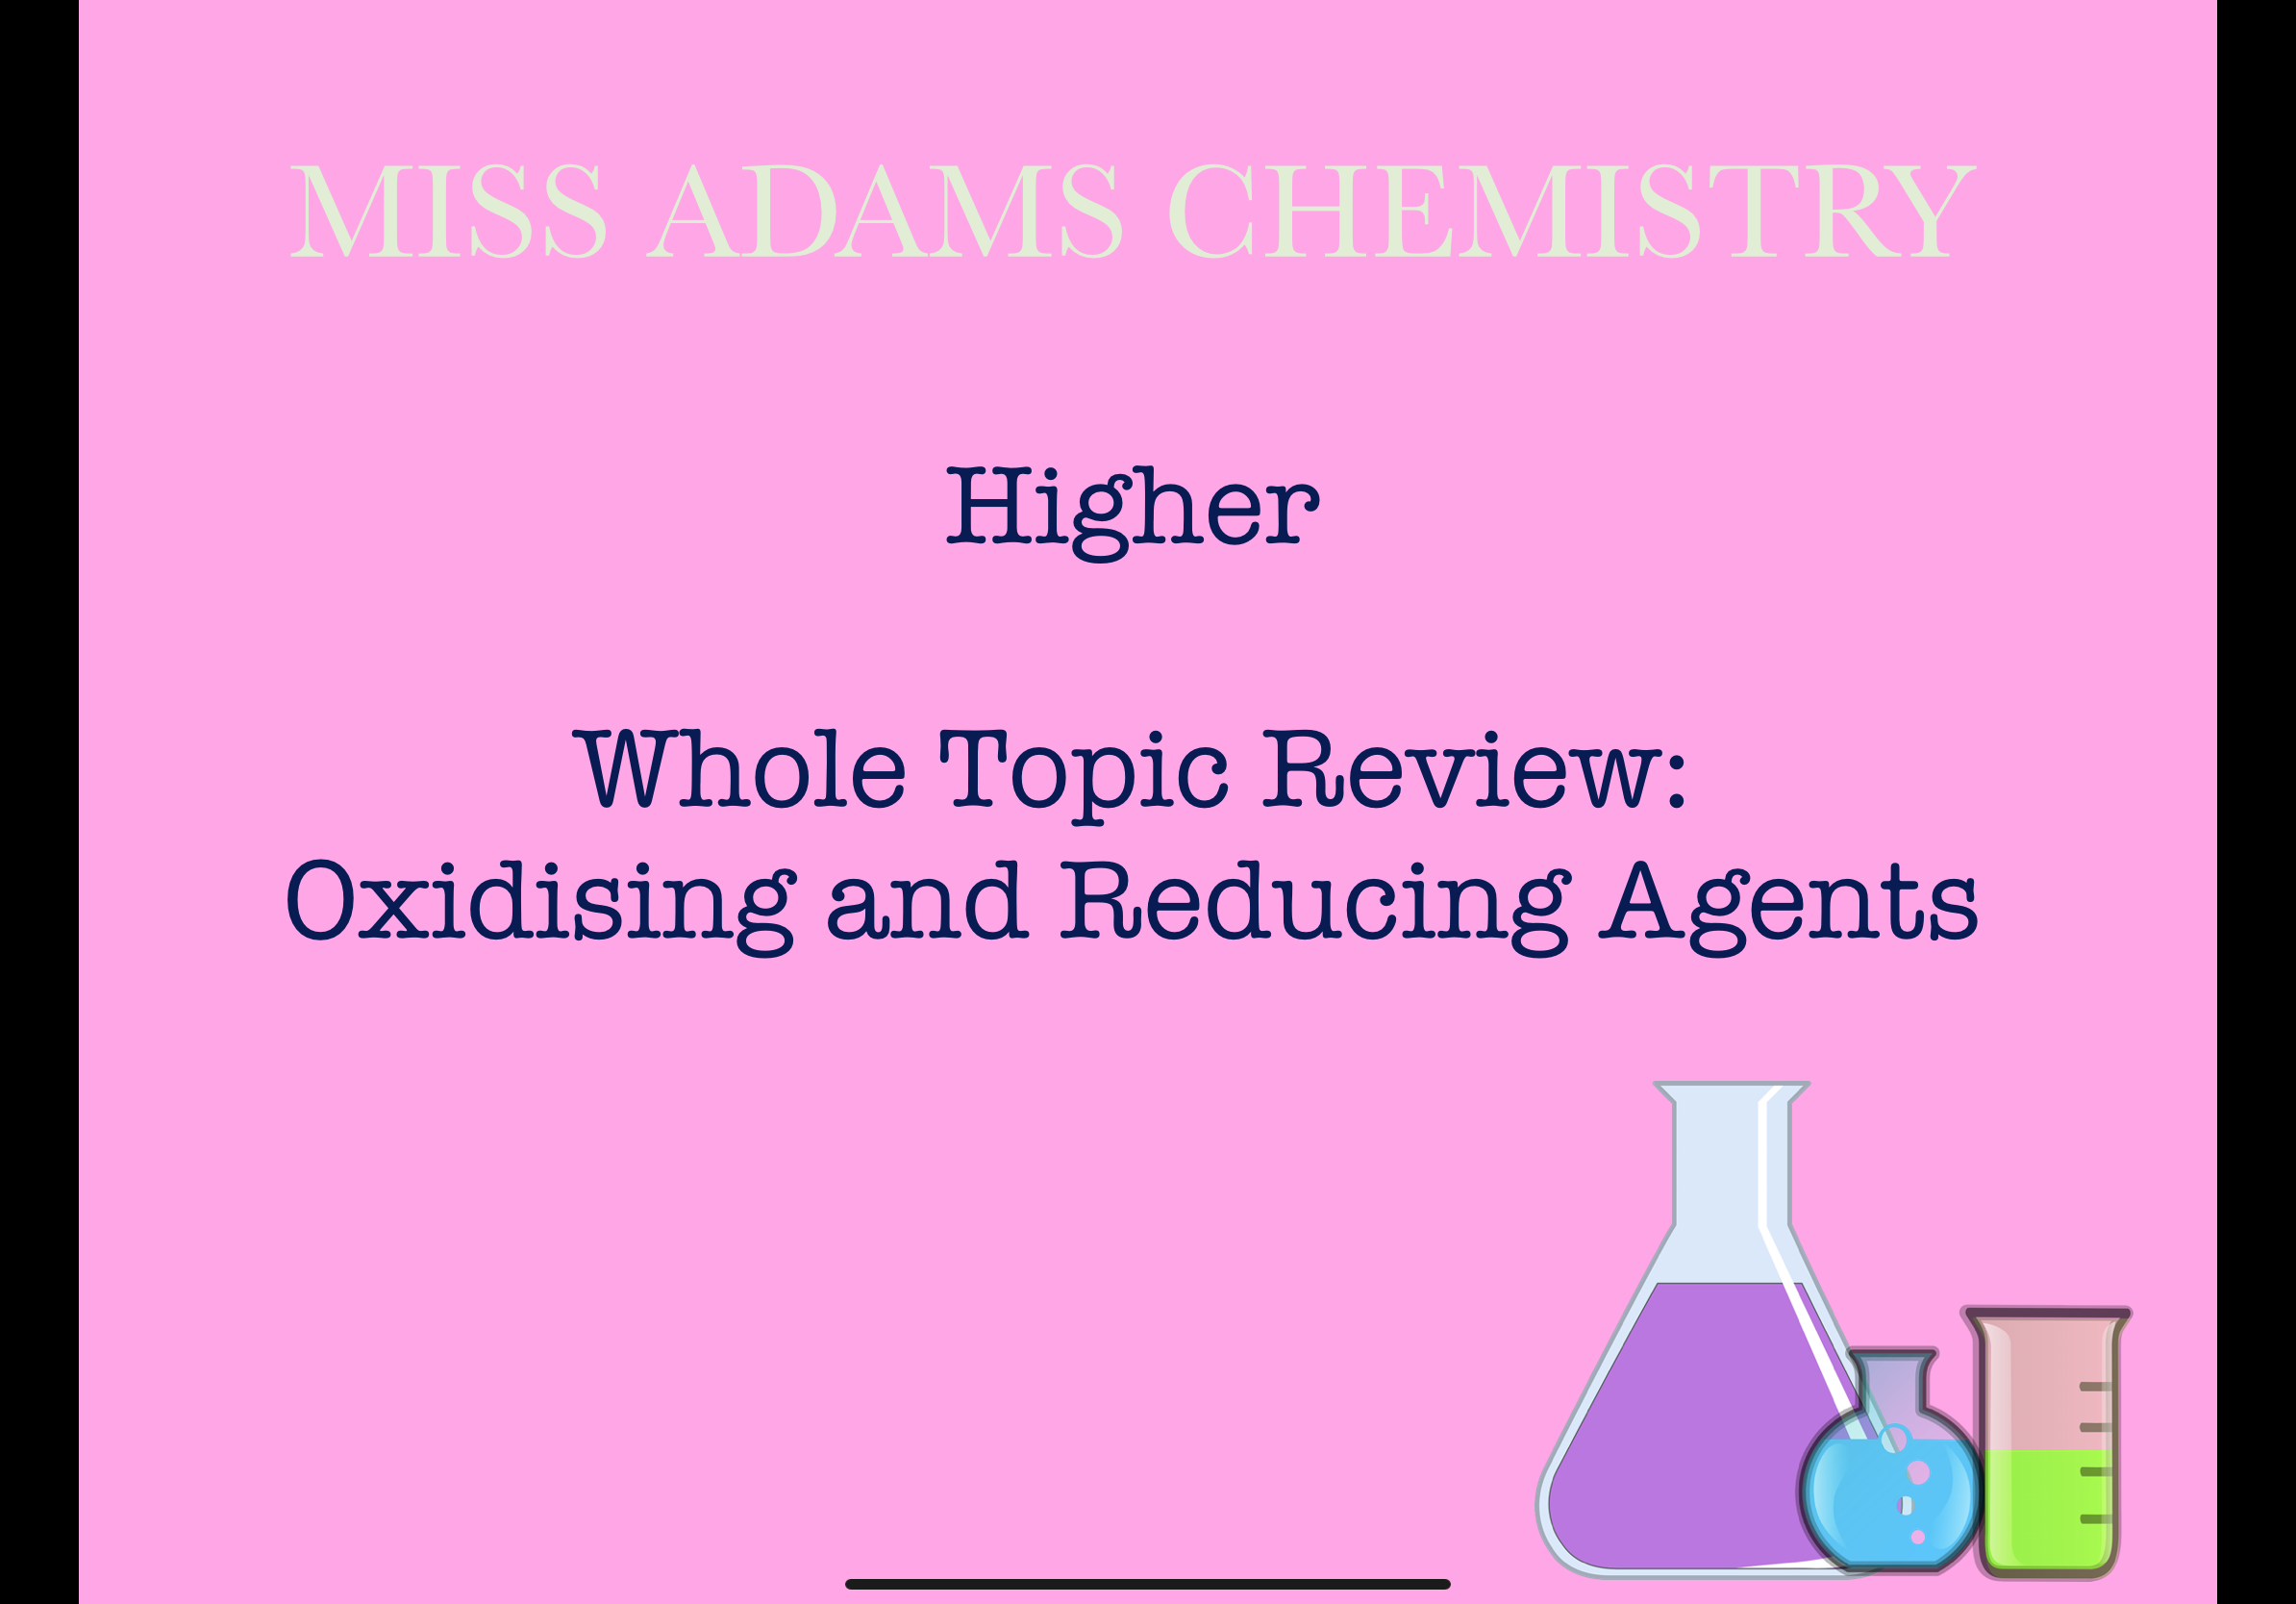 image from Oxidising and Reducing Agents Whole Topic Review